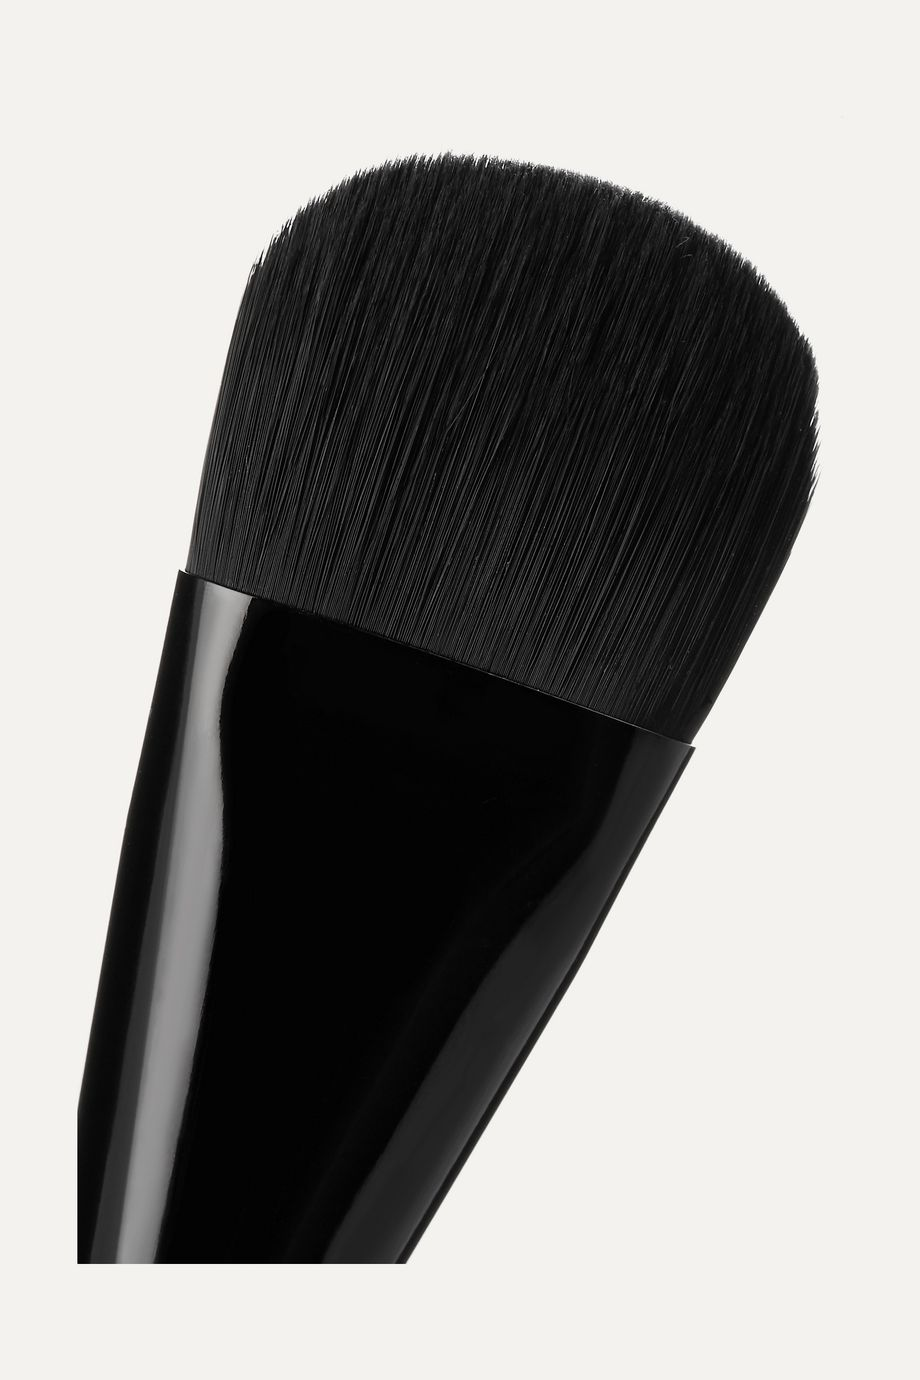 Marc Jacobs Beauty The Seamless Liquid Foundation Brush